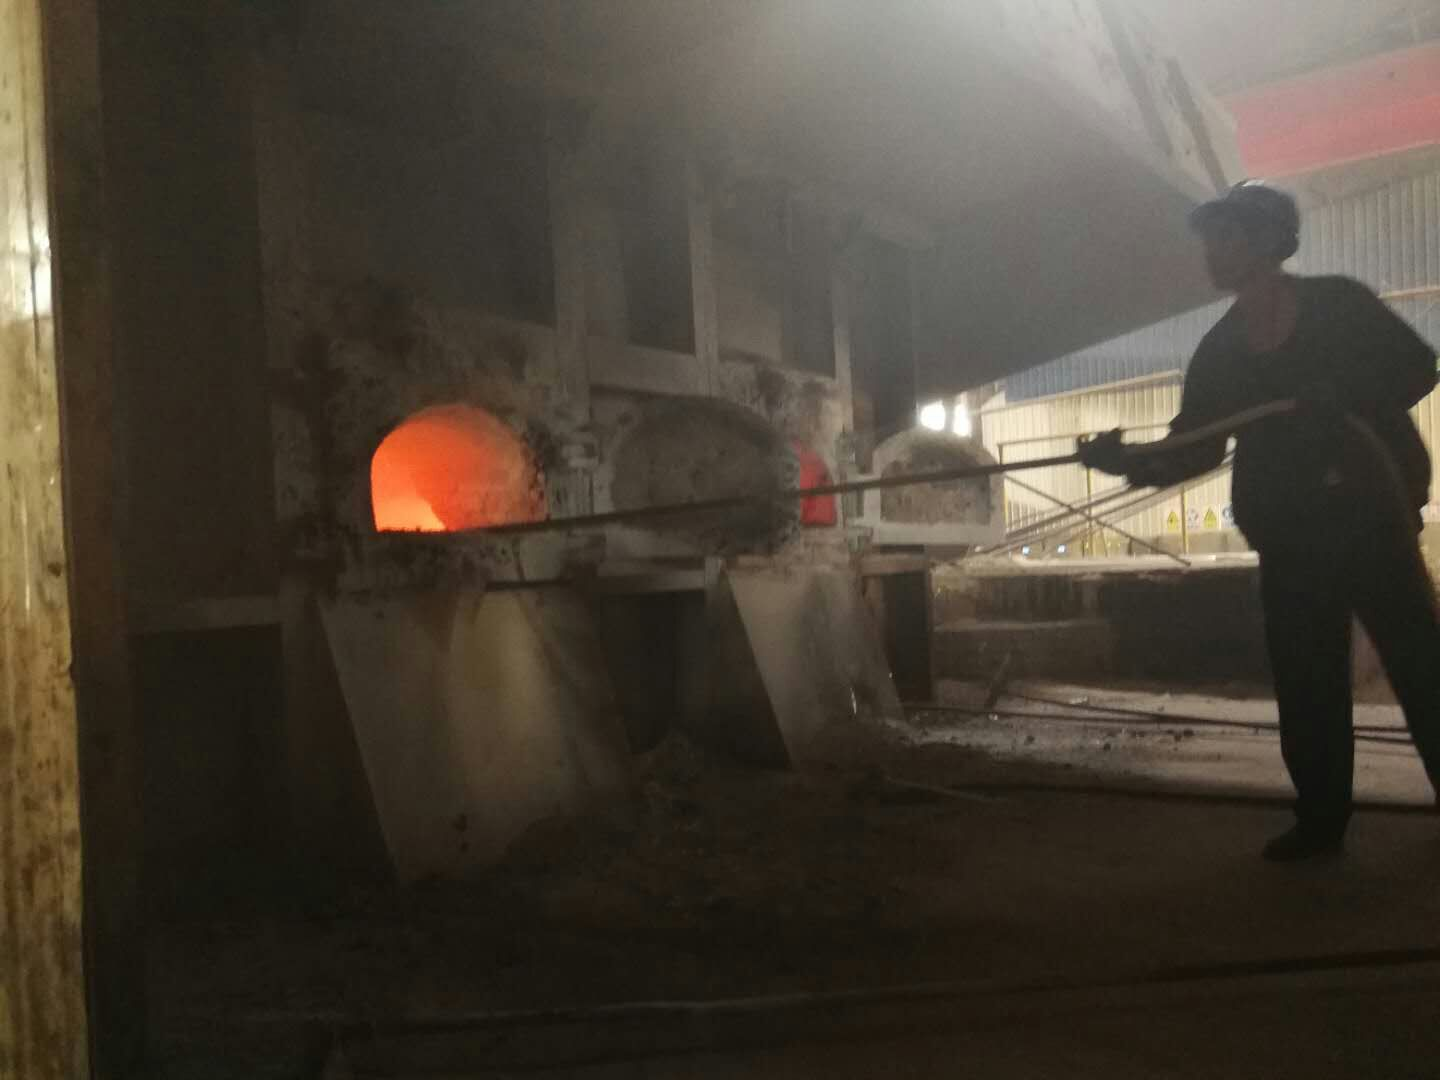 Molten Aluminum Refining and Smelting